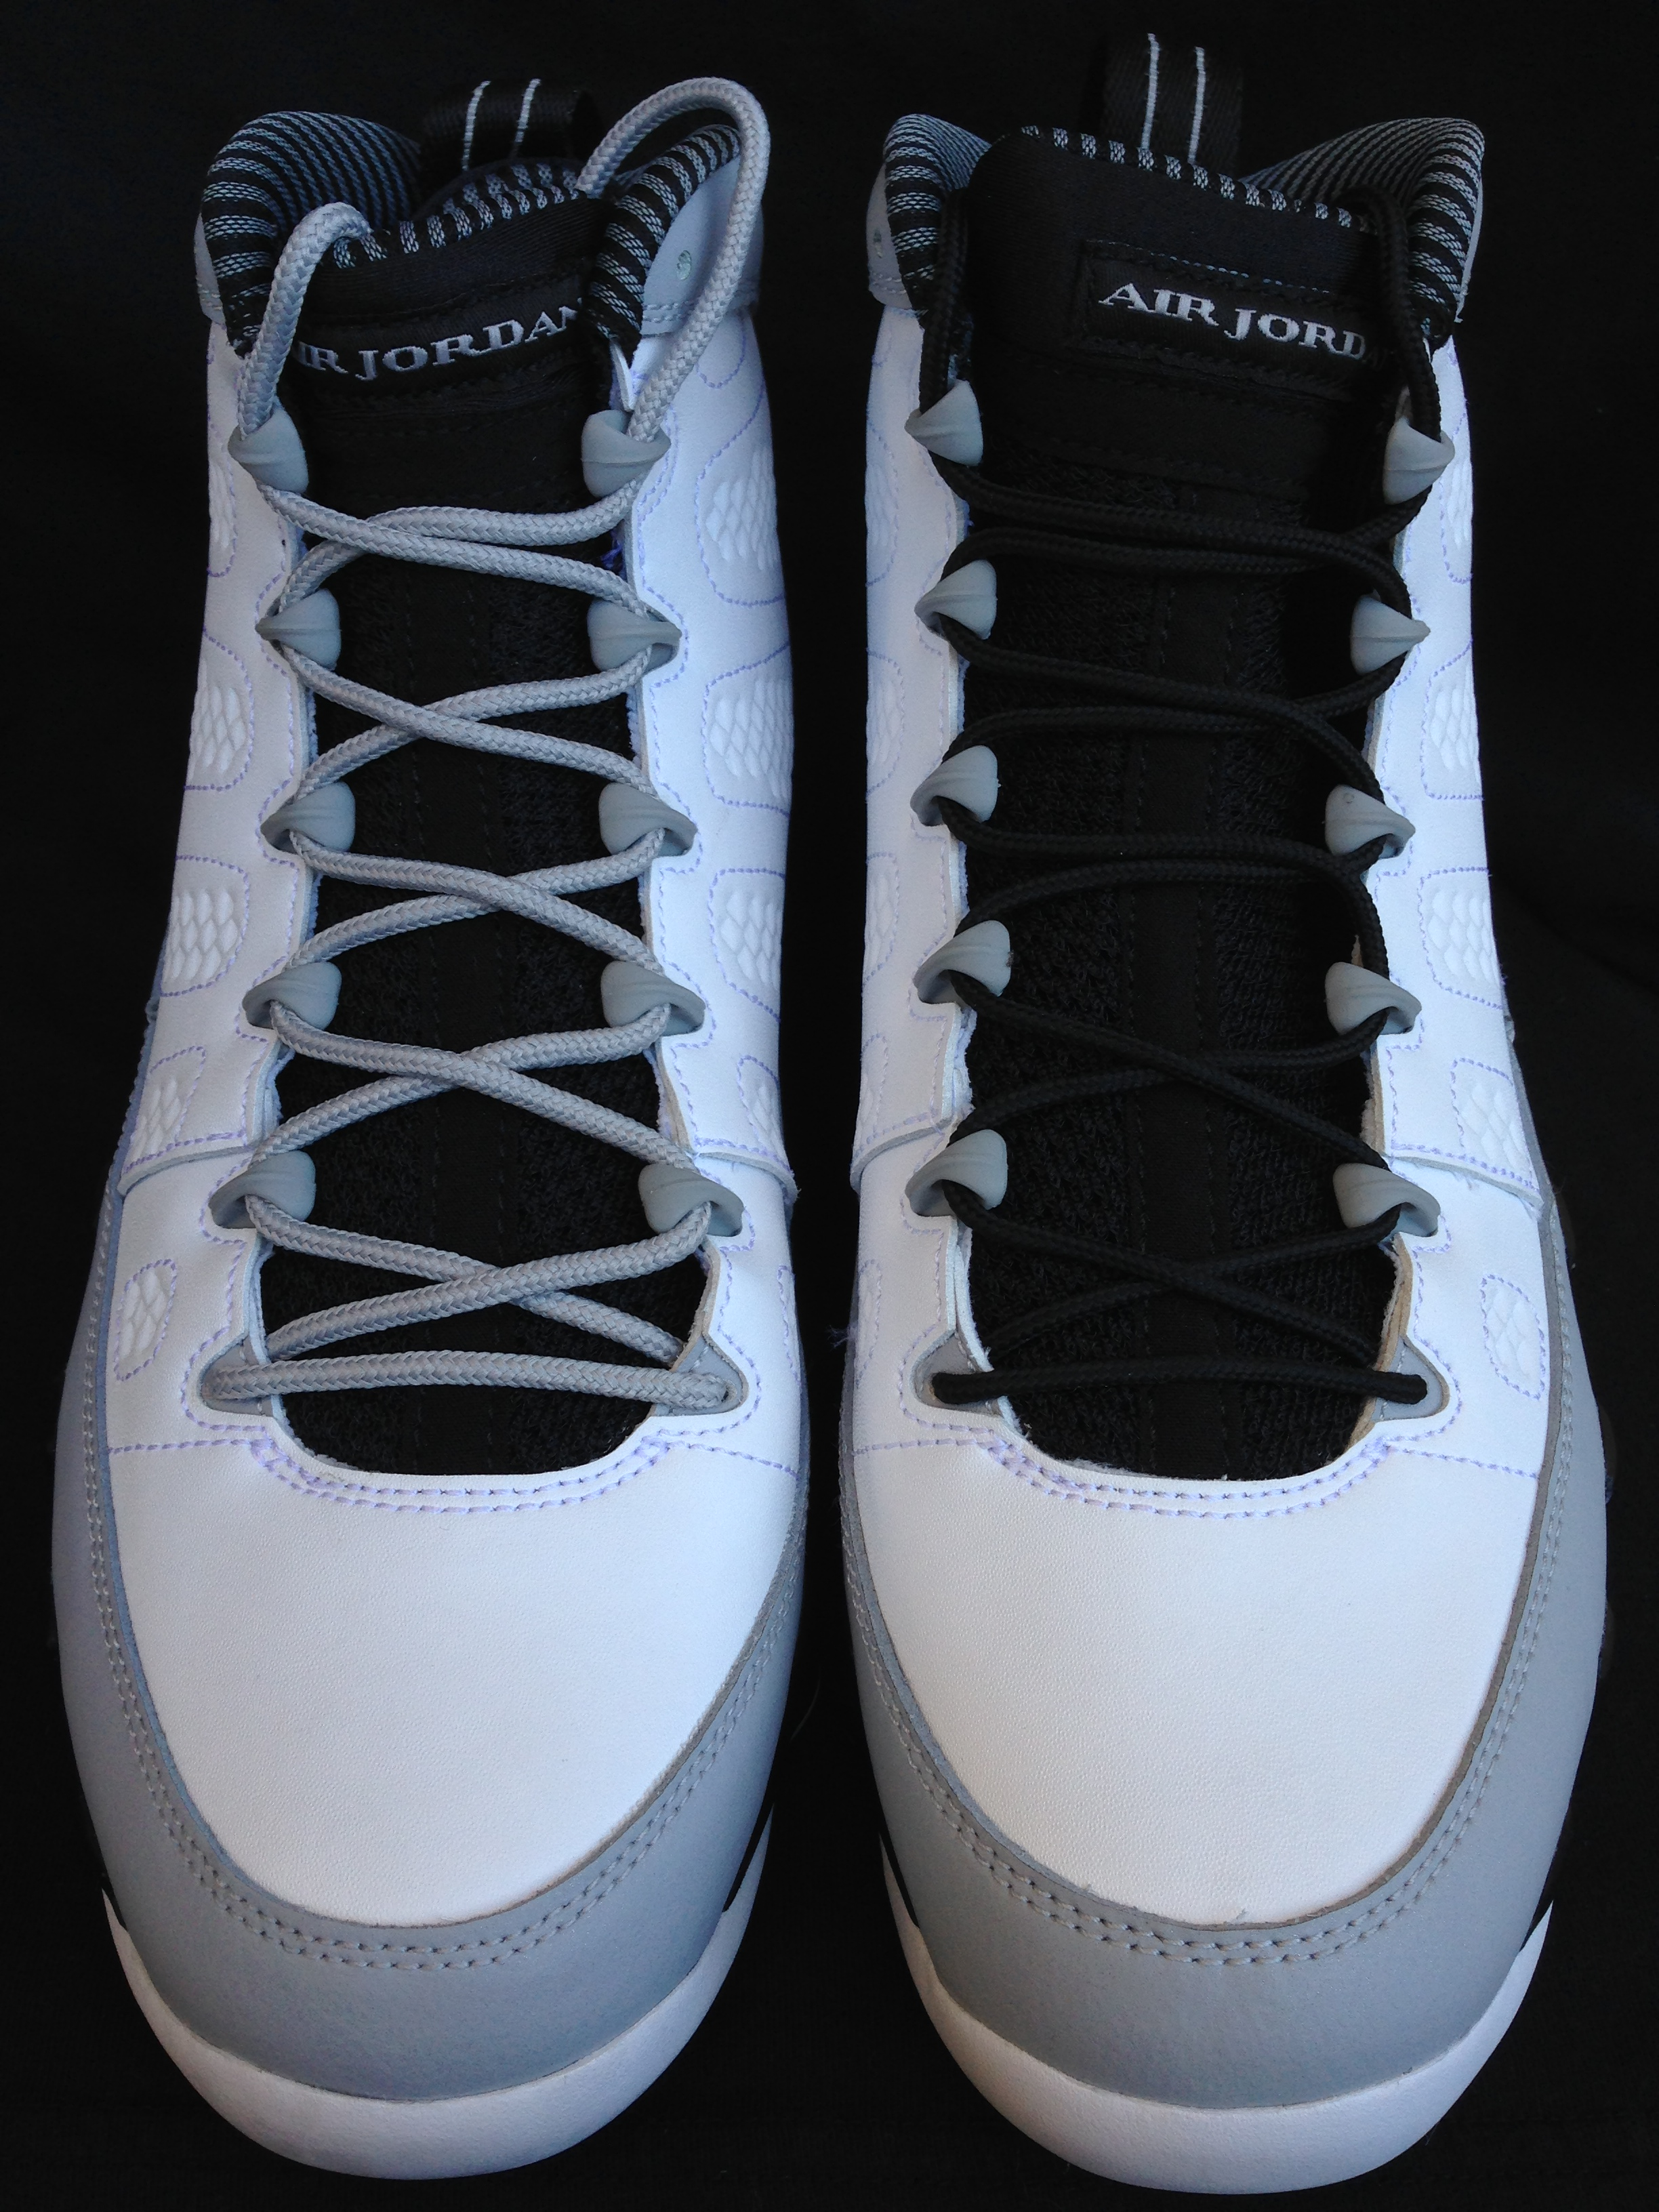 white shoe strings for jordans 4 s